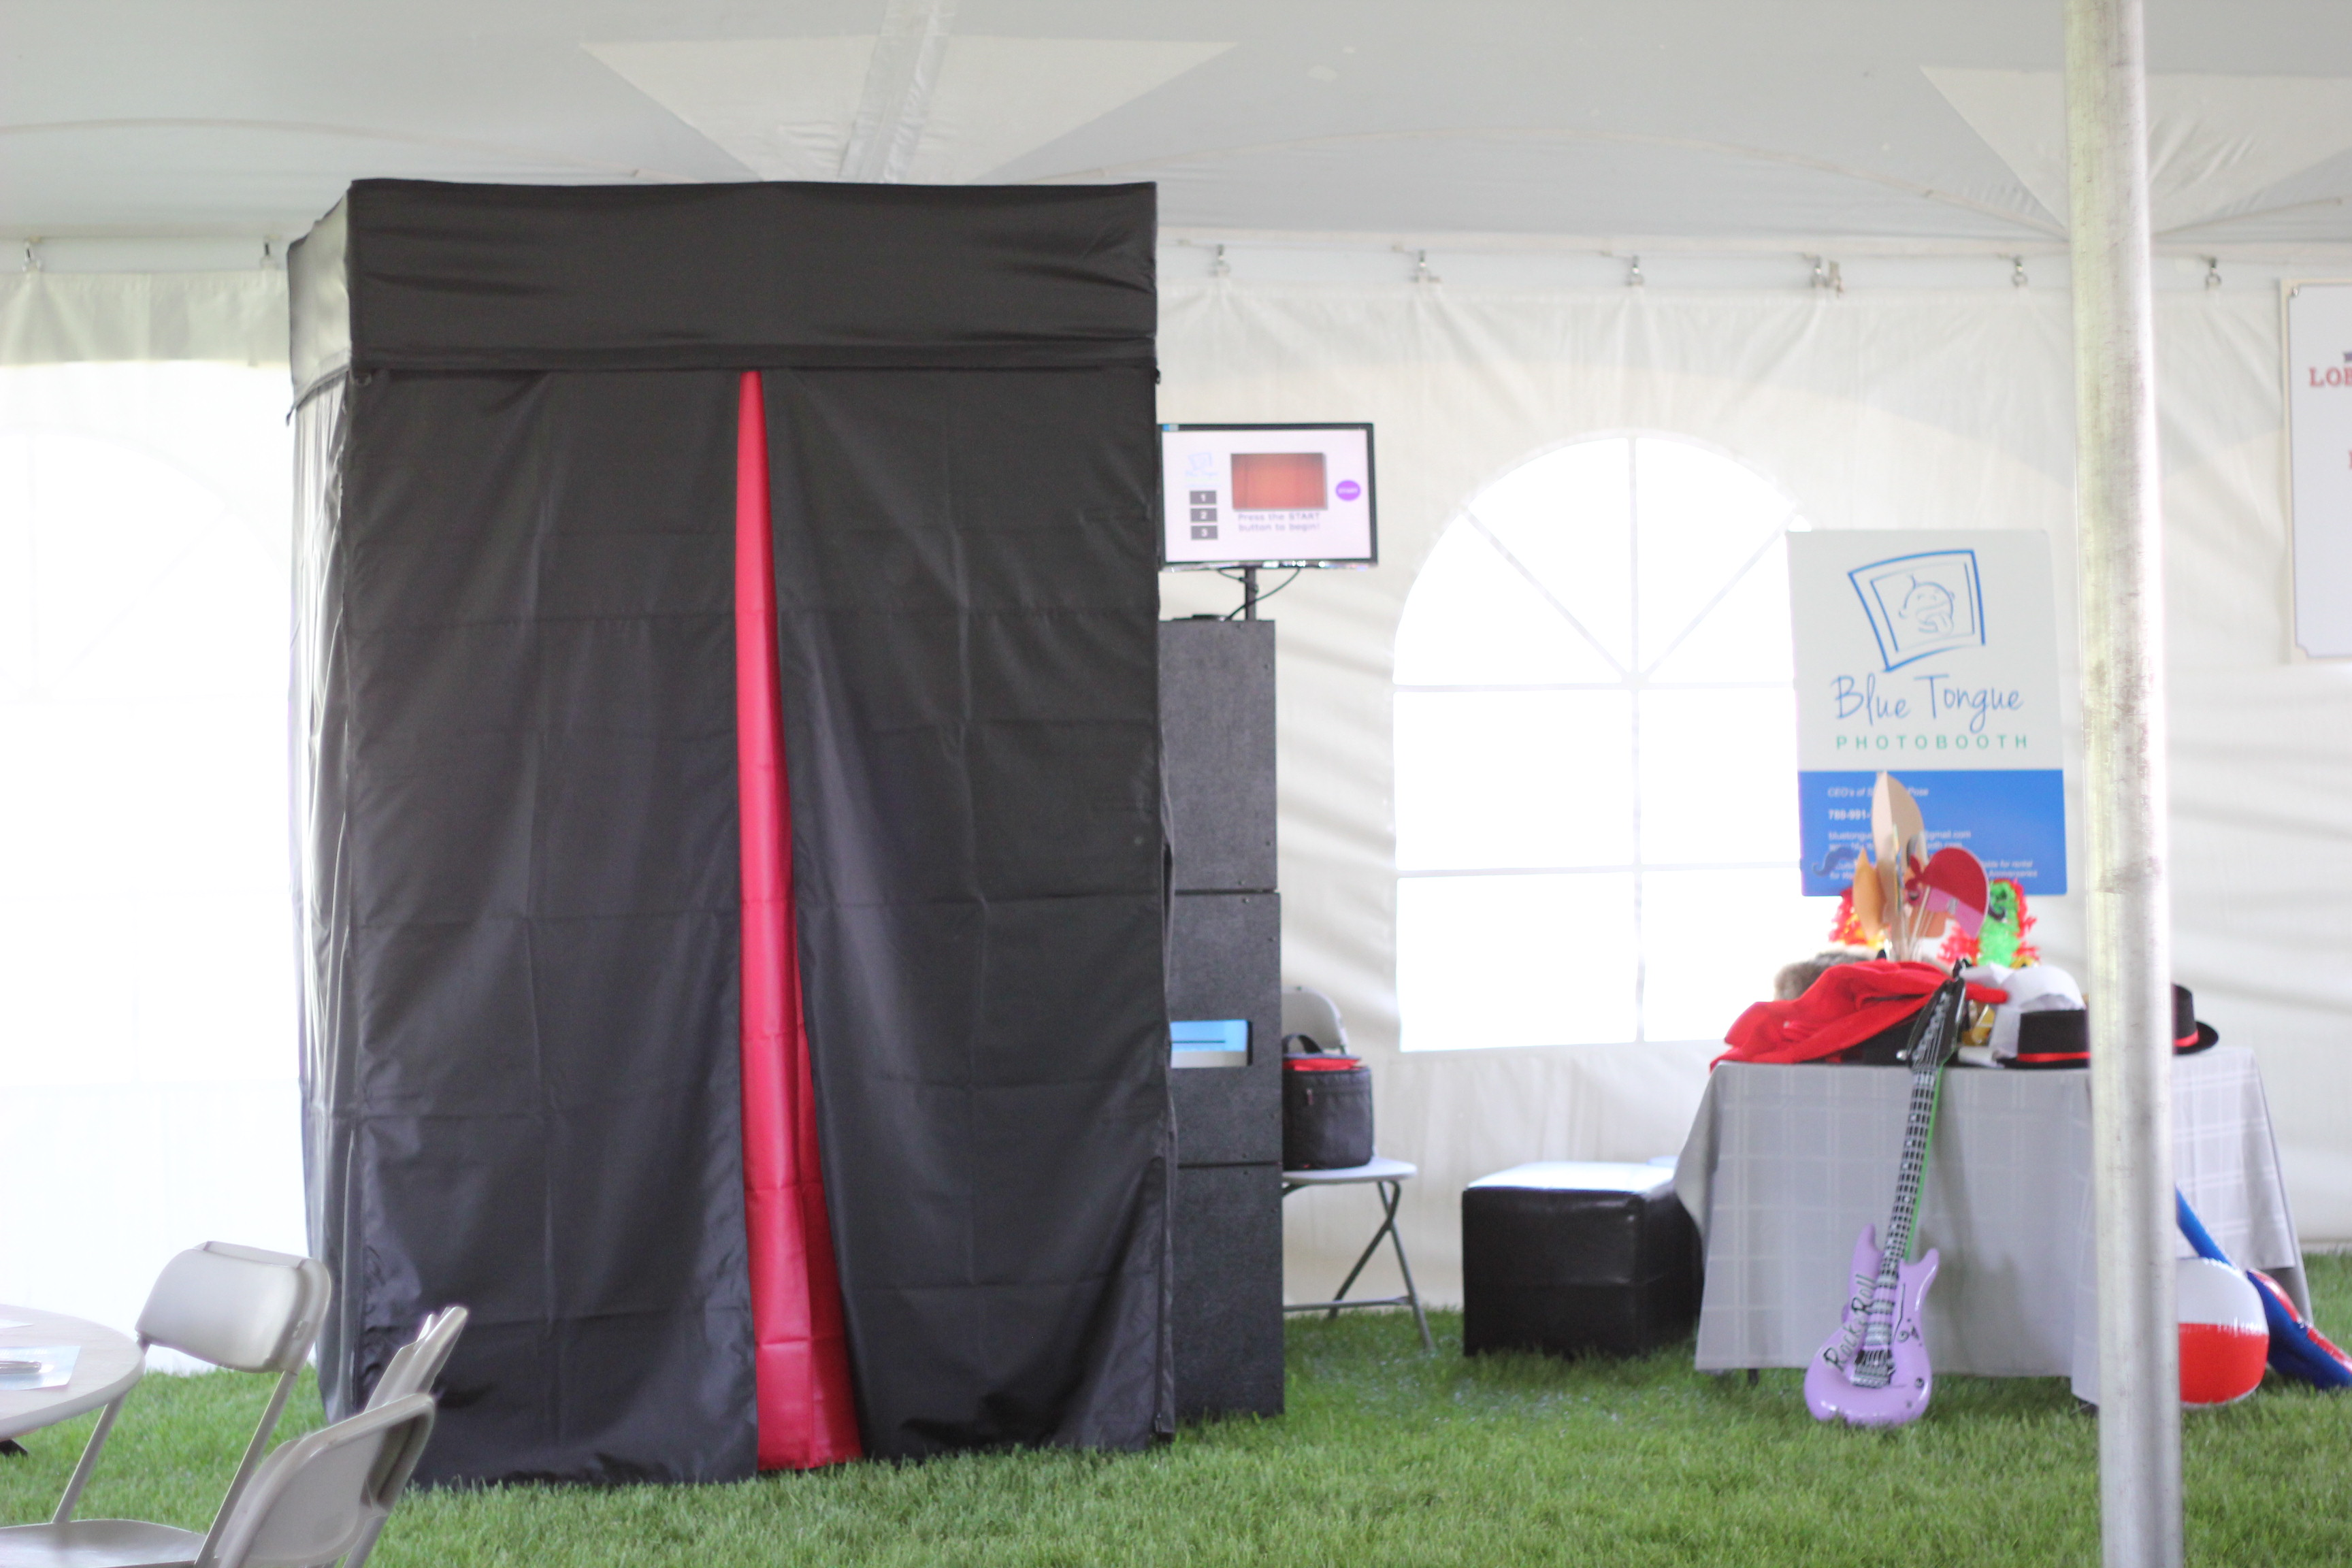 Enclosed Photobooth Set-Up